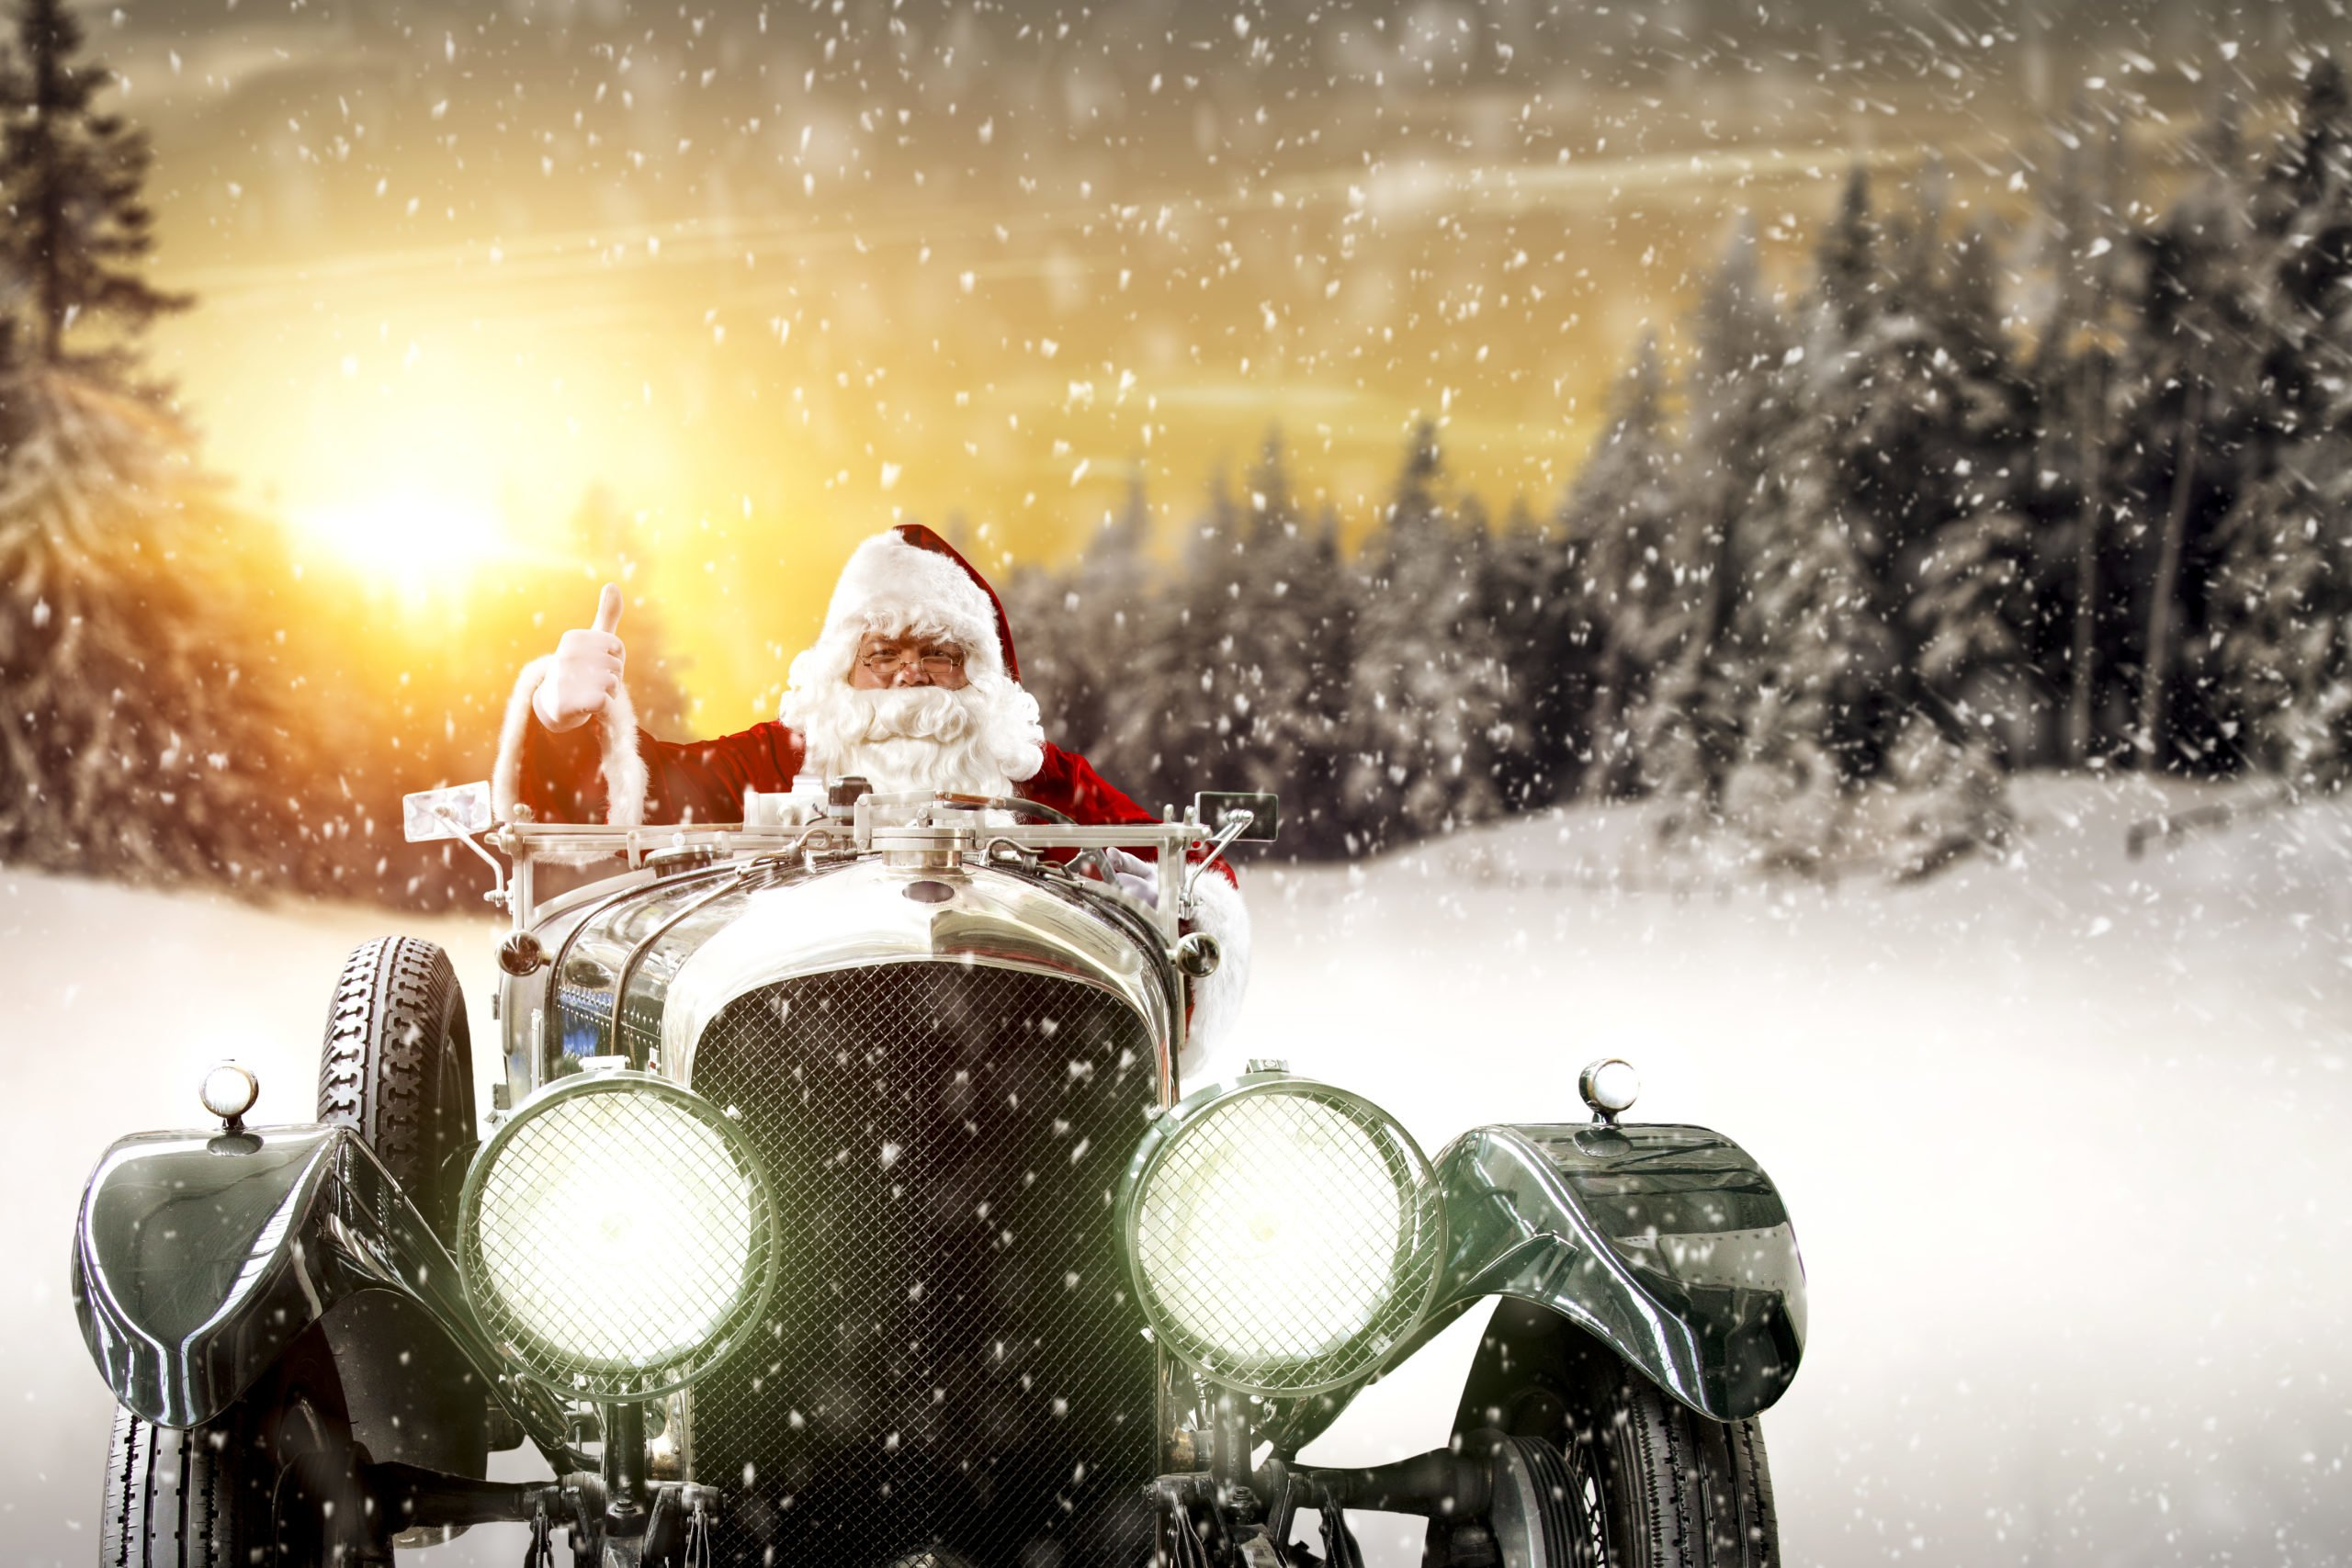 Picture showing Santa driving a car through the snow